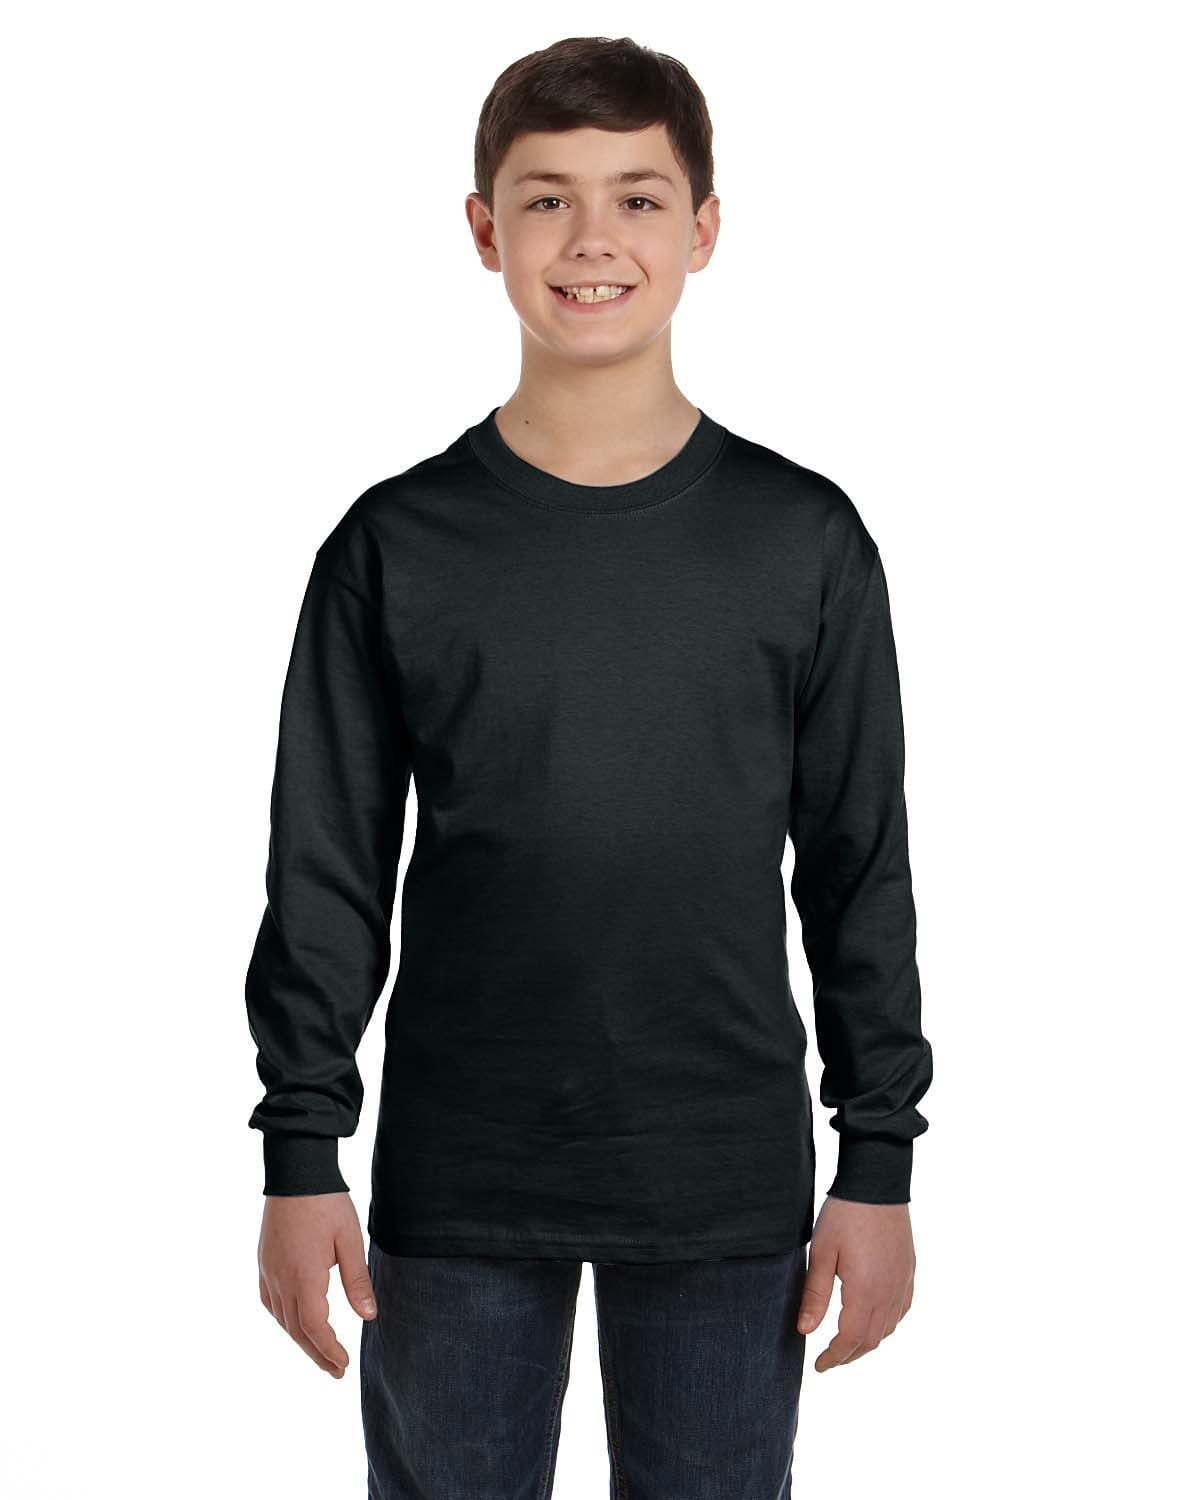 g540b-youth-heavy-cotton-5-3oz-long-sleeve-t-shirt-XSmall-BLACK-Oasispromos